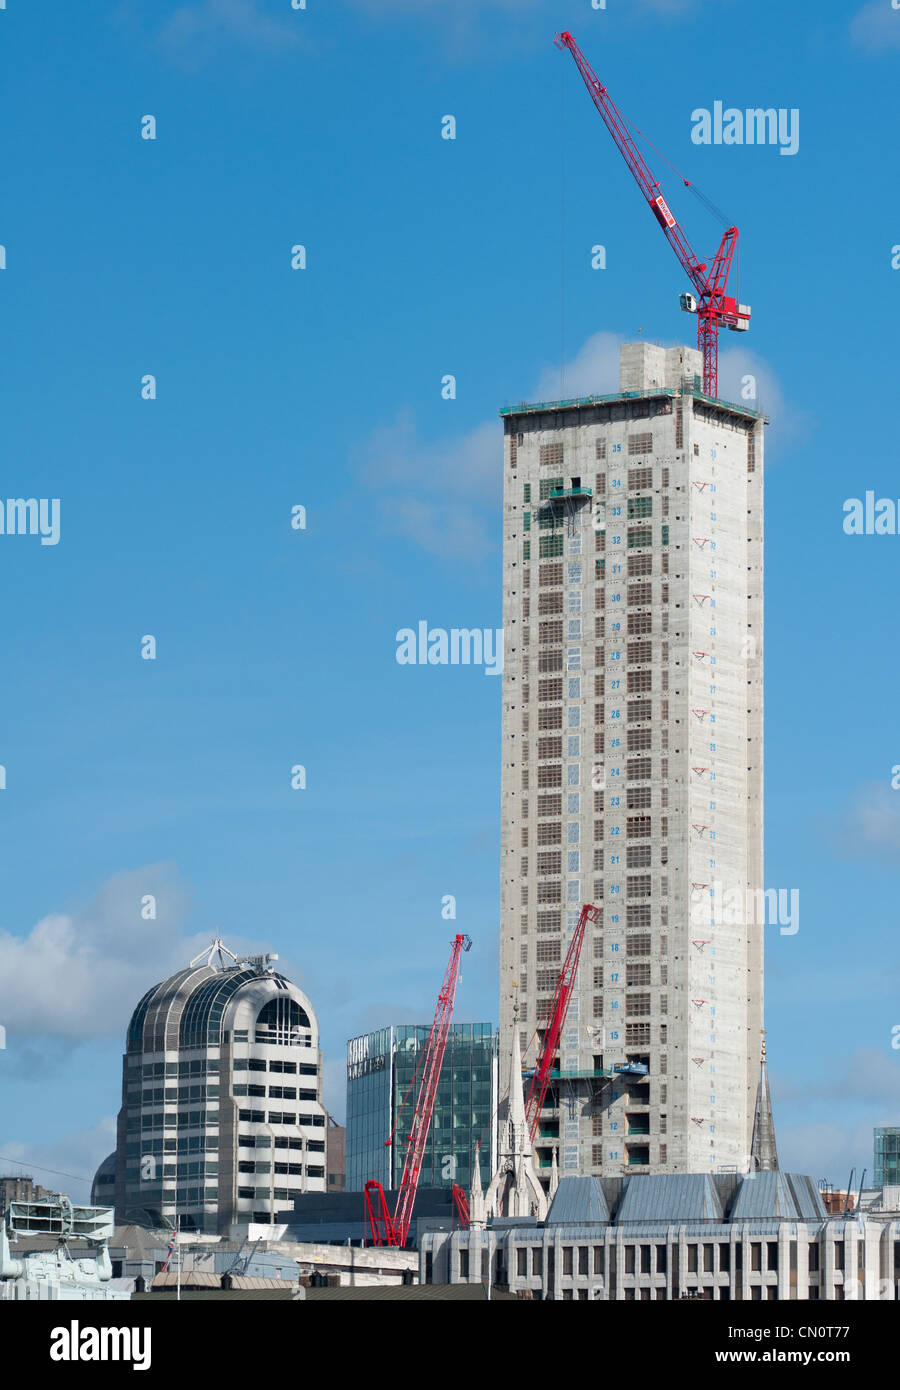 Skyscraper at 20 Fenchurch Street under construction in the City of London, England. - Stock Image